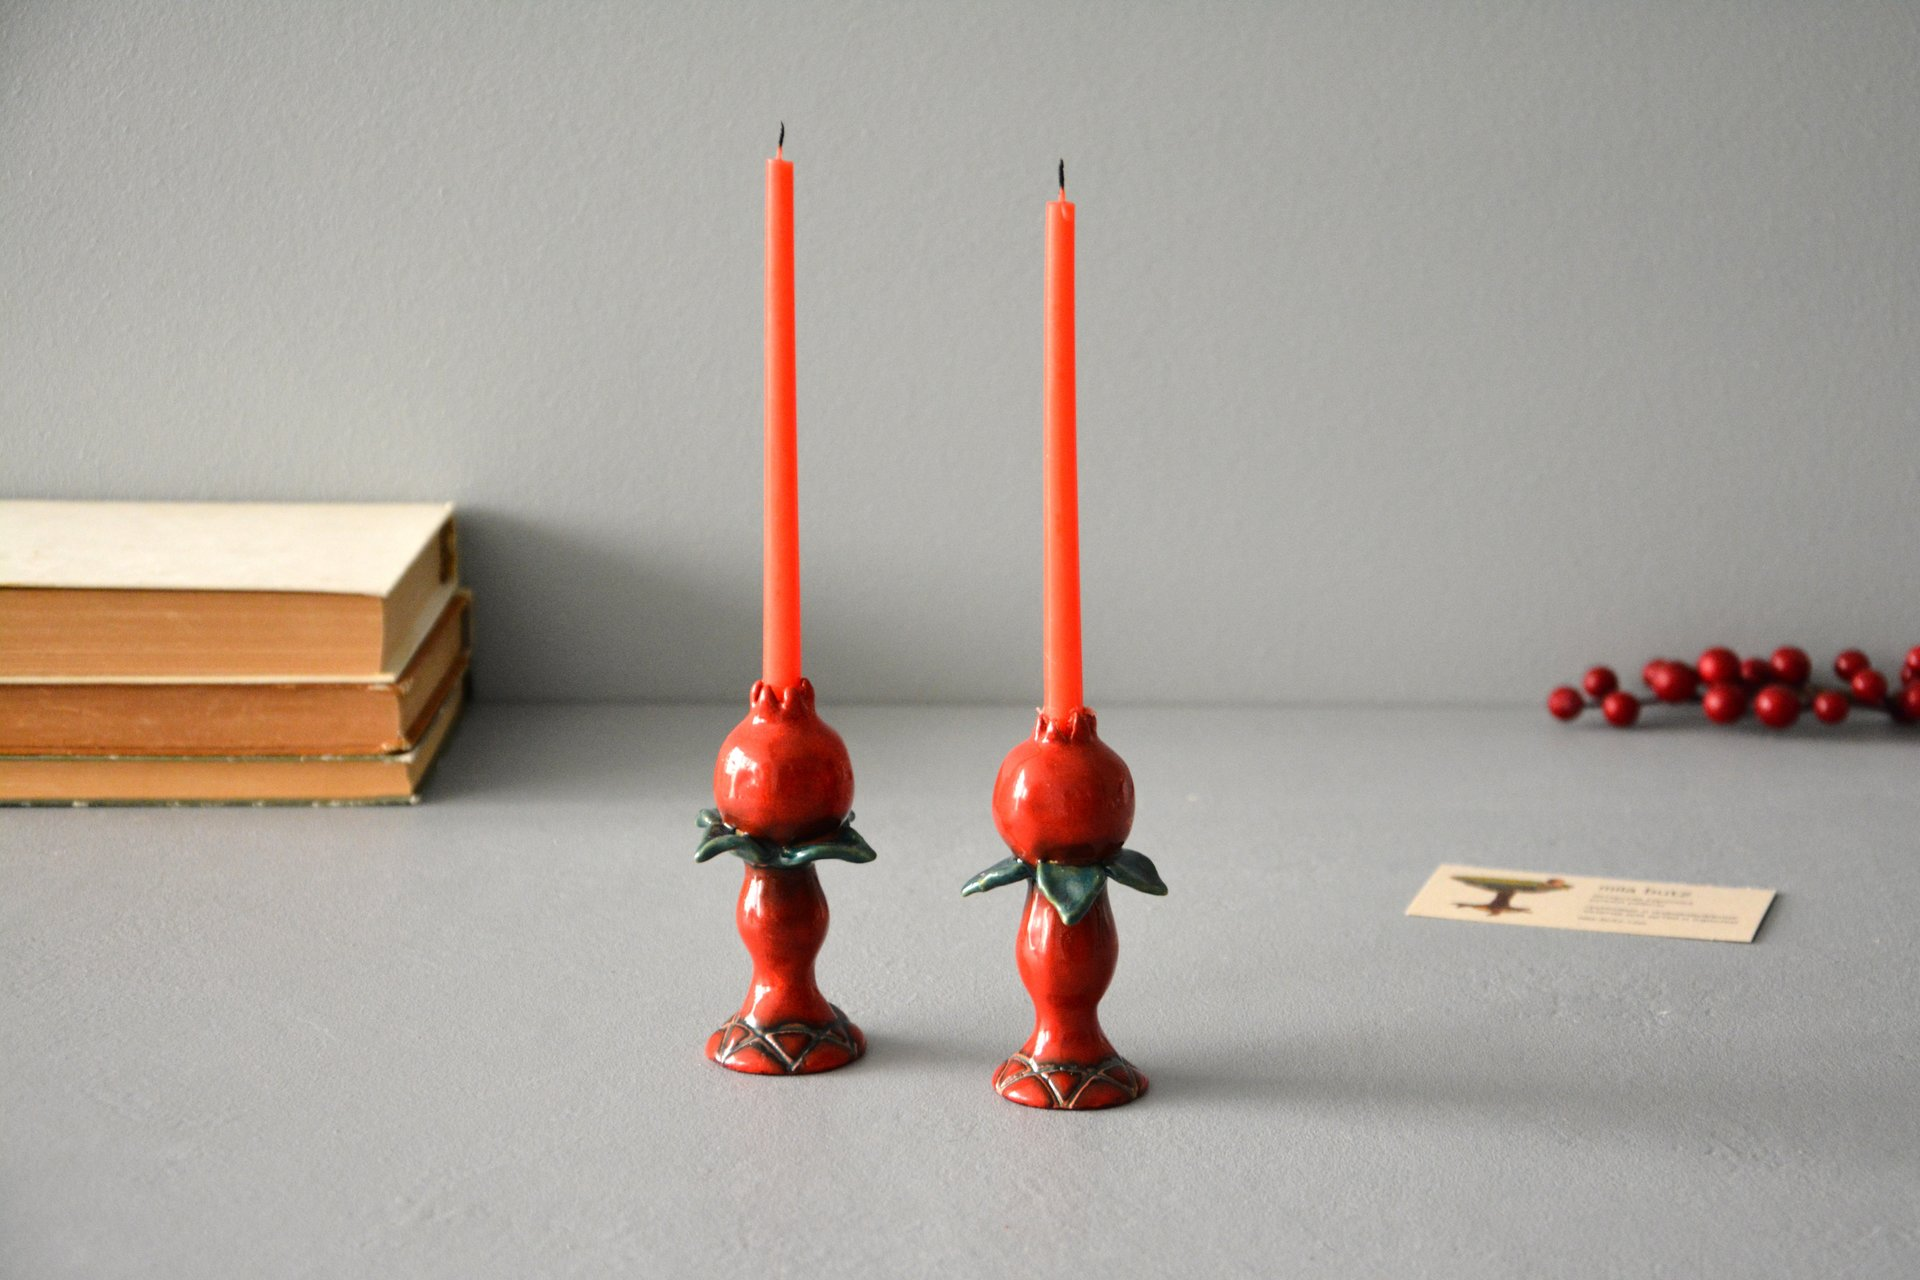 Pair of candlesticks for Shabbat, height - 9 cm, photo 2 of 4.